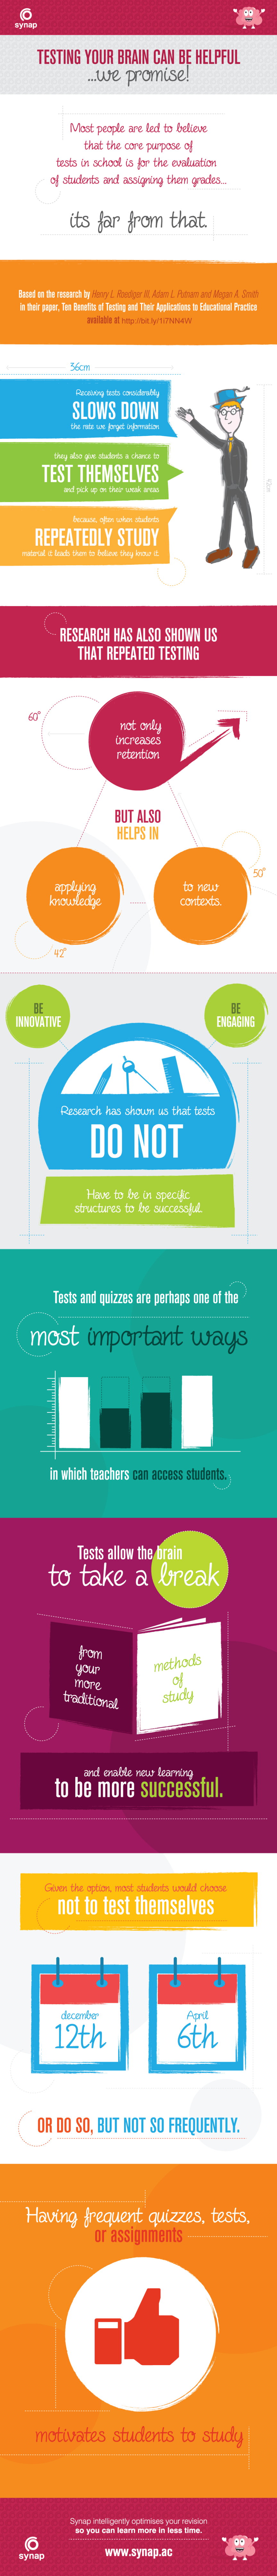 Top 10 Benefits of Testing Infographic